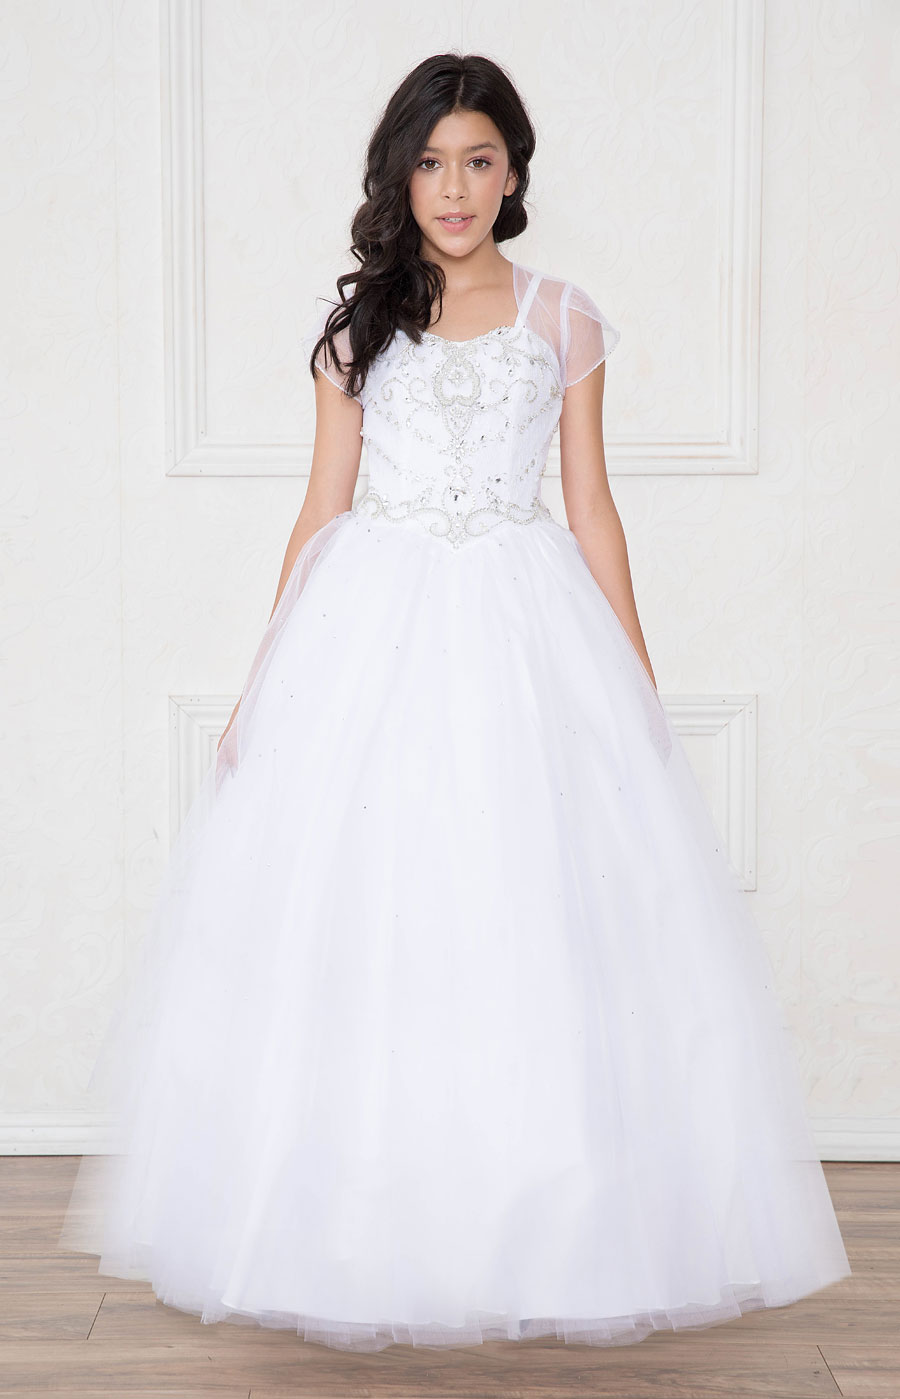 7a511d276f7 Girls First Communion Gown with Rhinestone Bodice – FirstCommunions.com